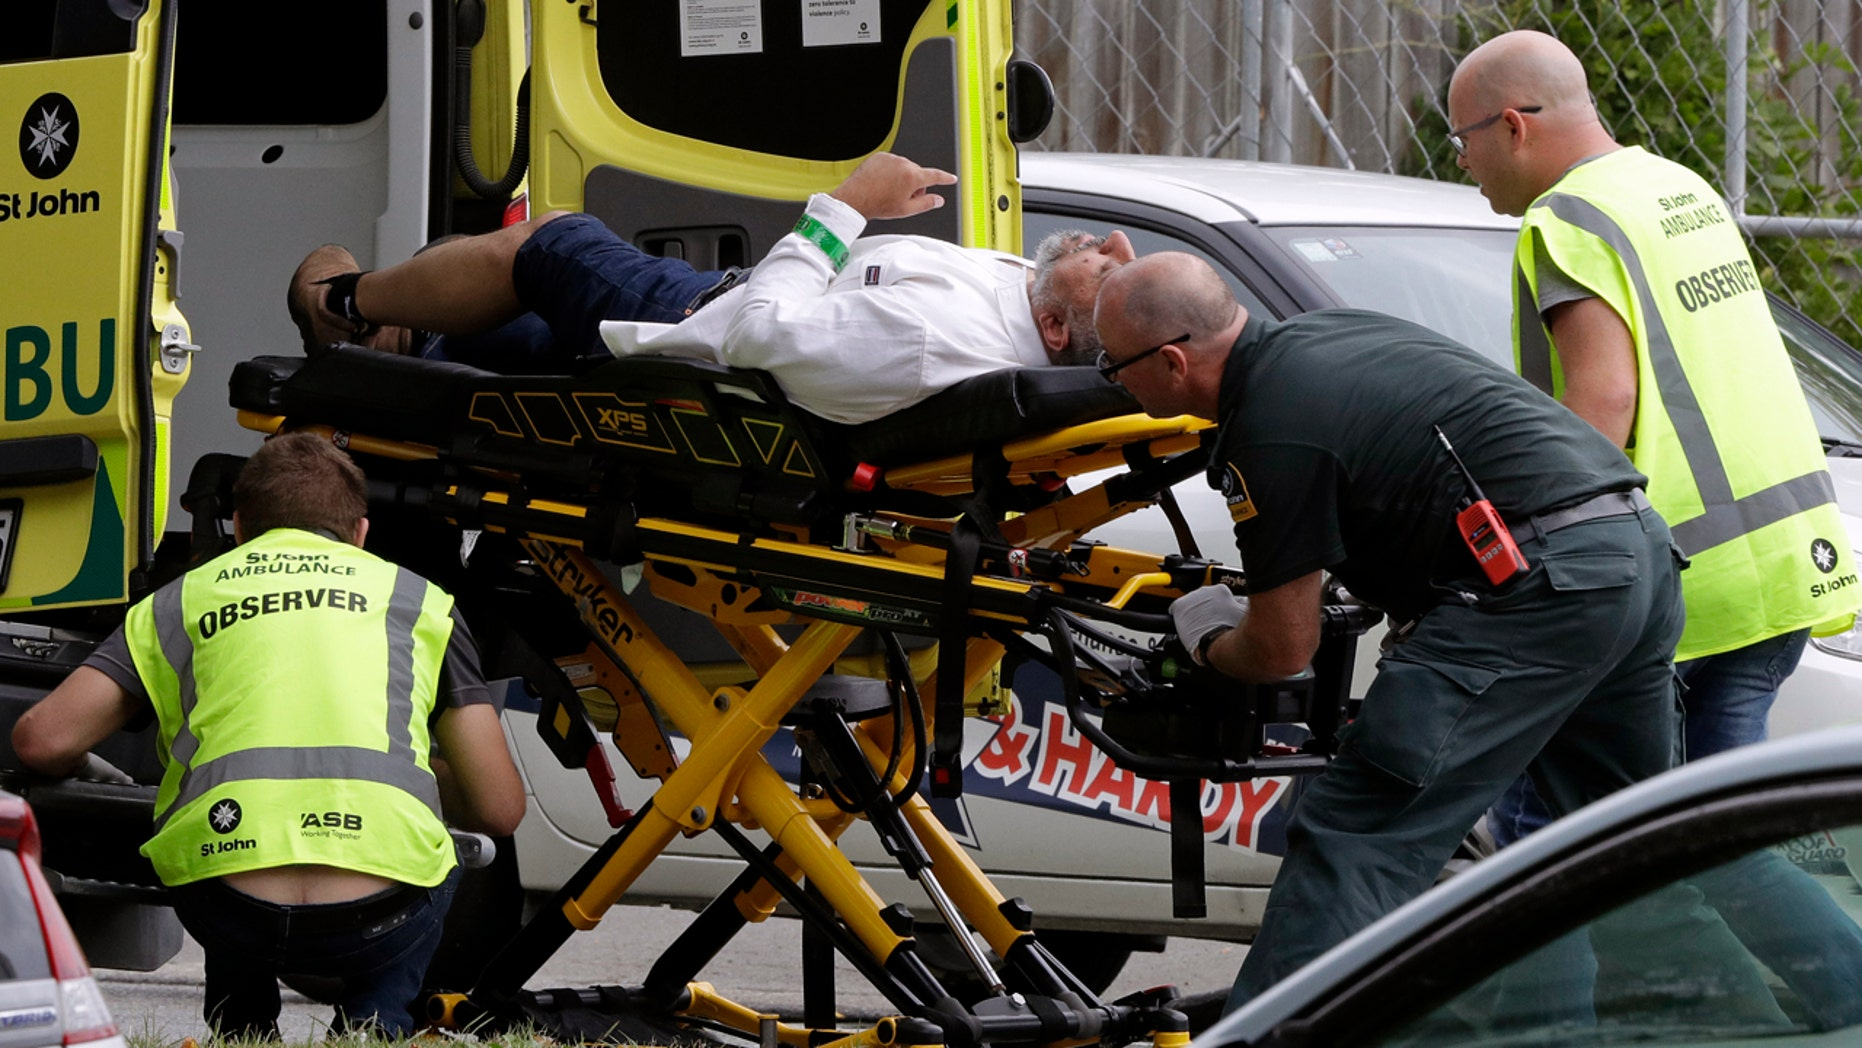 Shooting In Christchurch Video Twitter: Witnesses Say Many Dead, Injured In Shooting At New